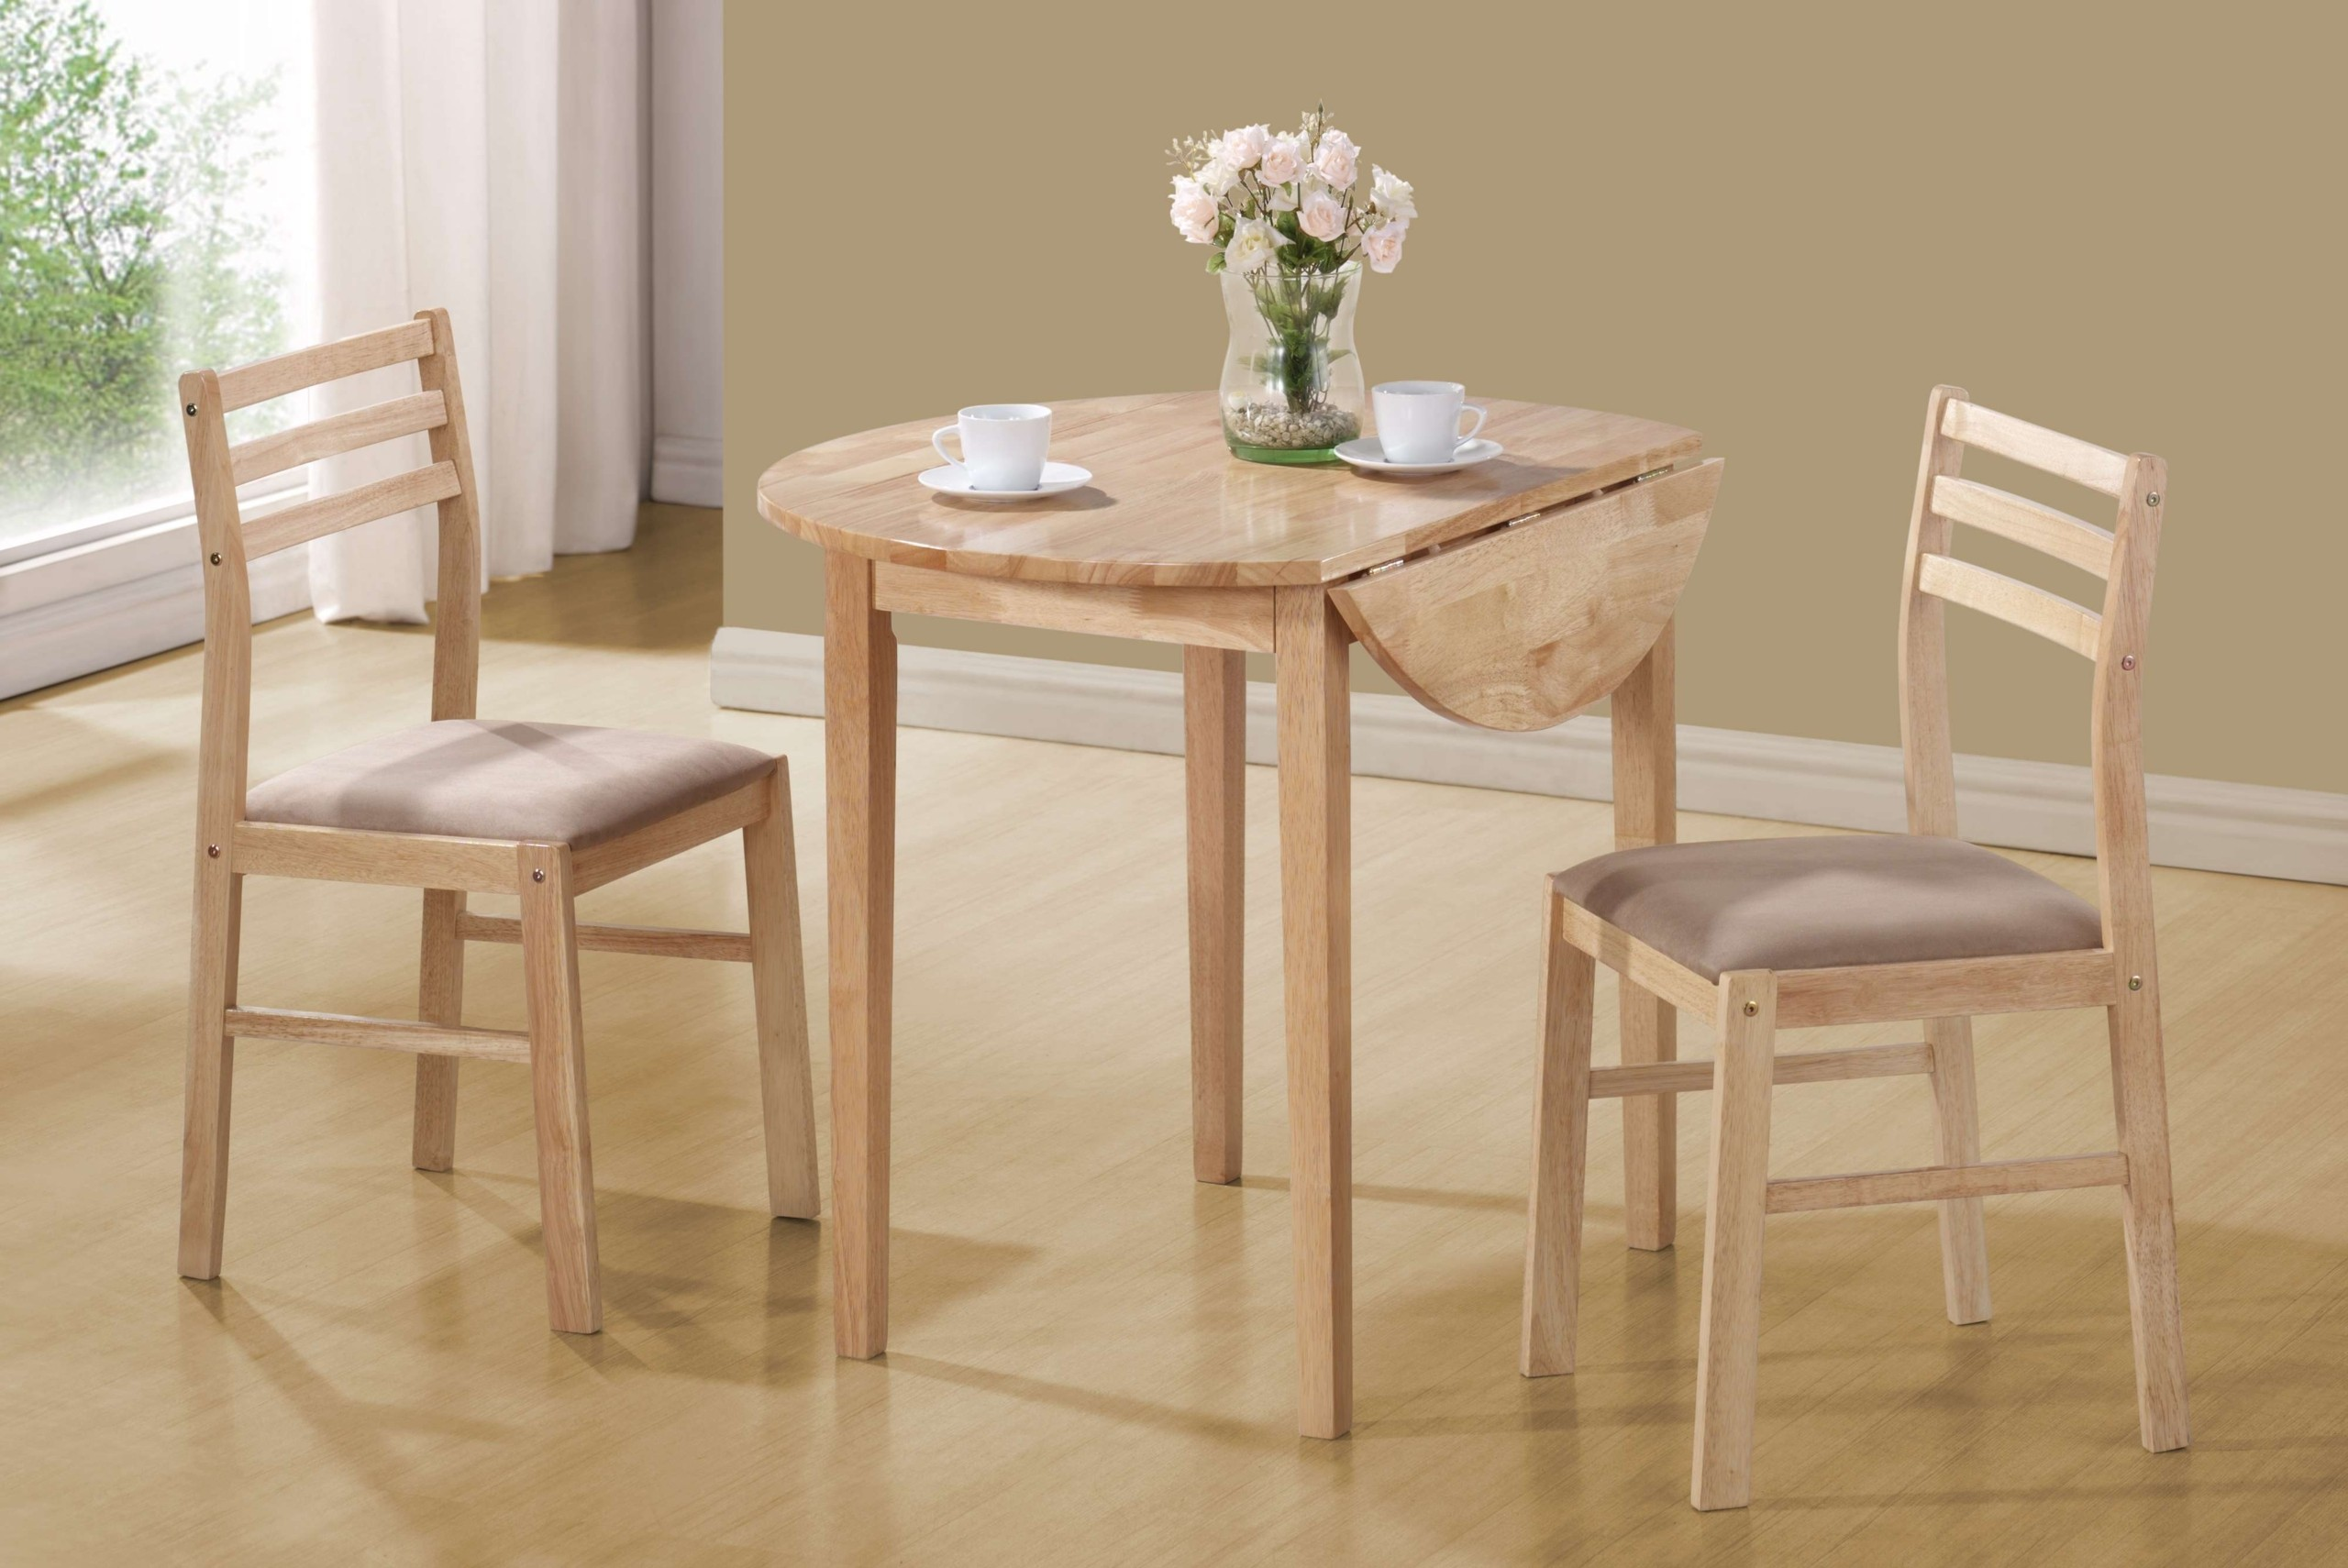 kitchen dinette set brass pulls sets for small spaces ideas on foter coaster 3pc table and chairs in natural finish